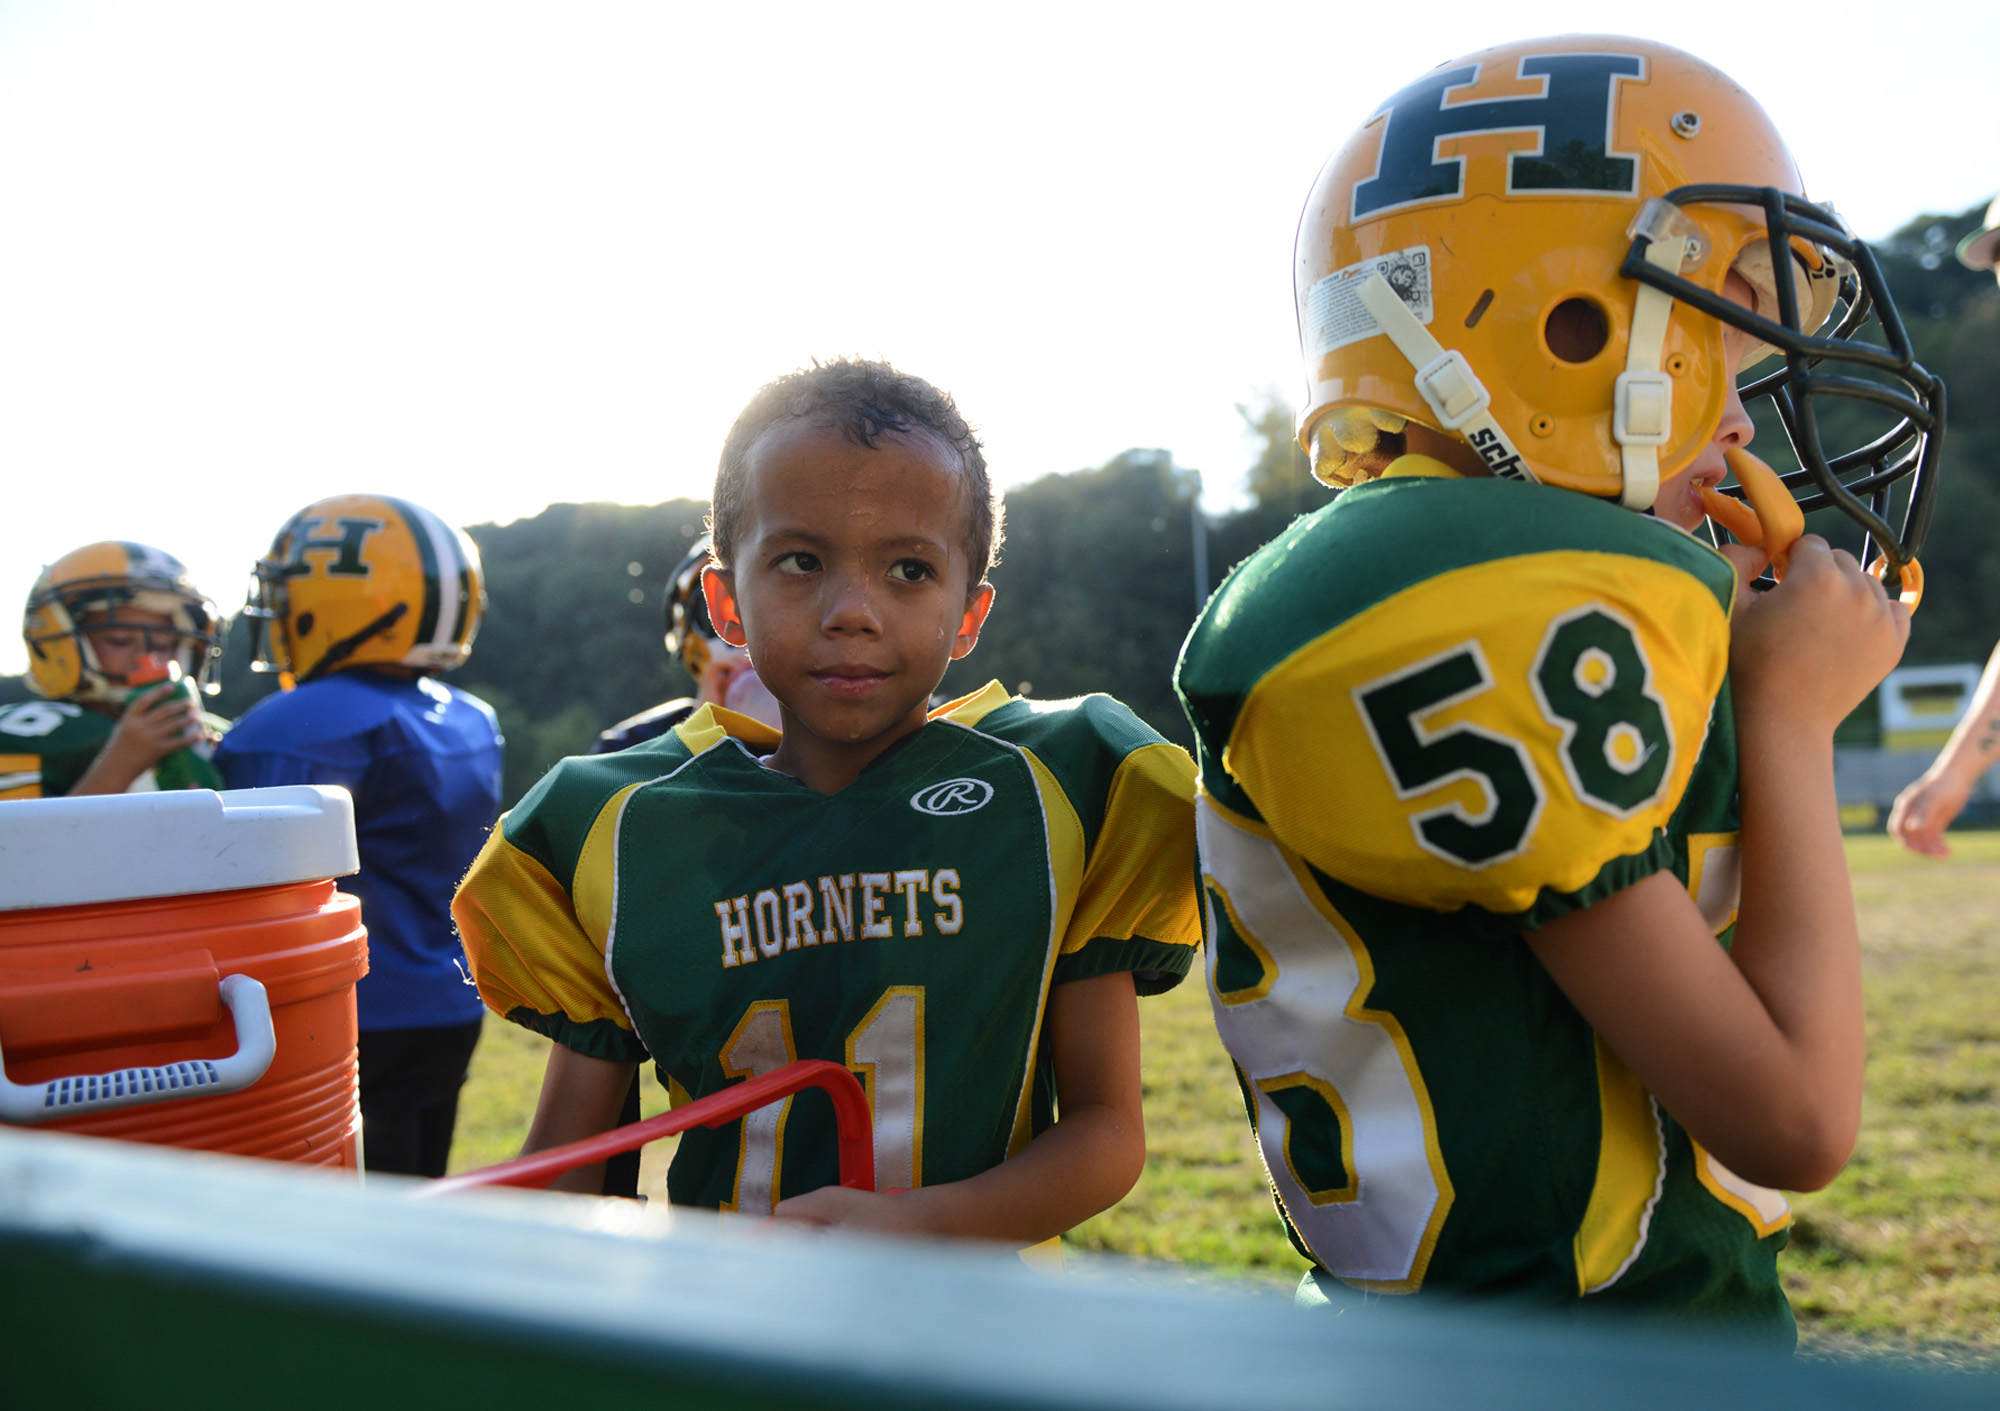 "6-year old Anton ""Tubby"" Clayborn Jr. (11) smiles while taking a break during football practice at Bushman Stadium in Harrison Township on Tuesday, Sept. 15, 2015. On Saturday, the Highland Hornets youth football team arranged for Anton to make a touchdown against the Butler Knights. Anton has a rare brain disorder that has required many surgeries and is mostly on the sidelines as he cannot be tackled."